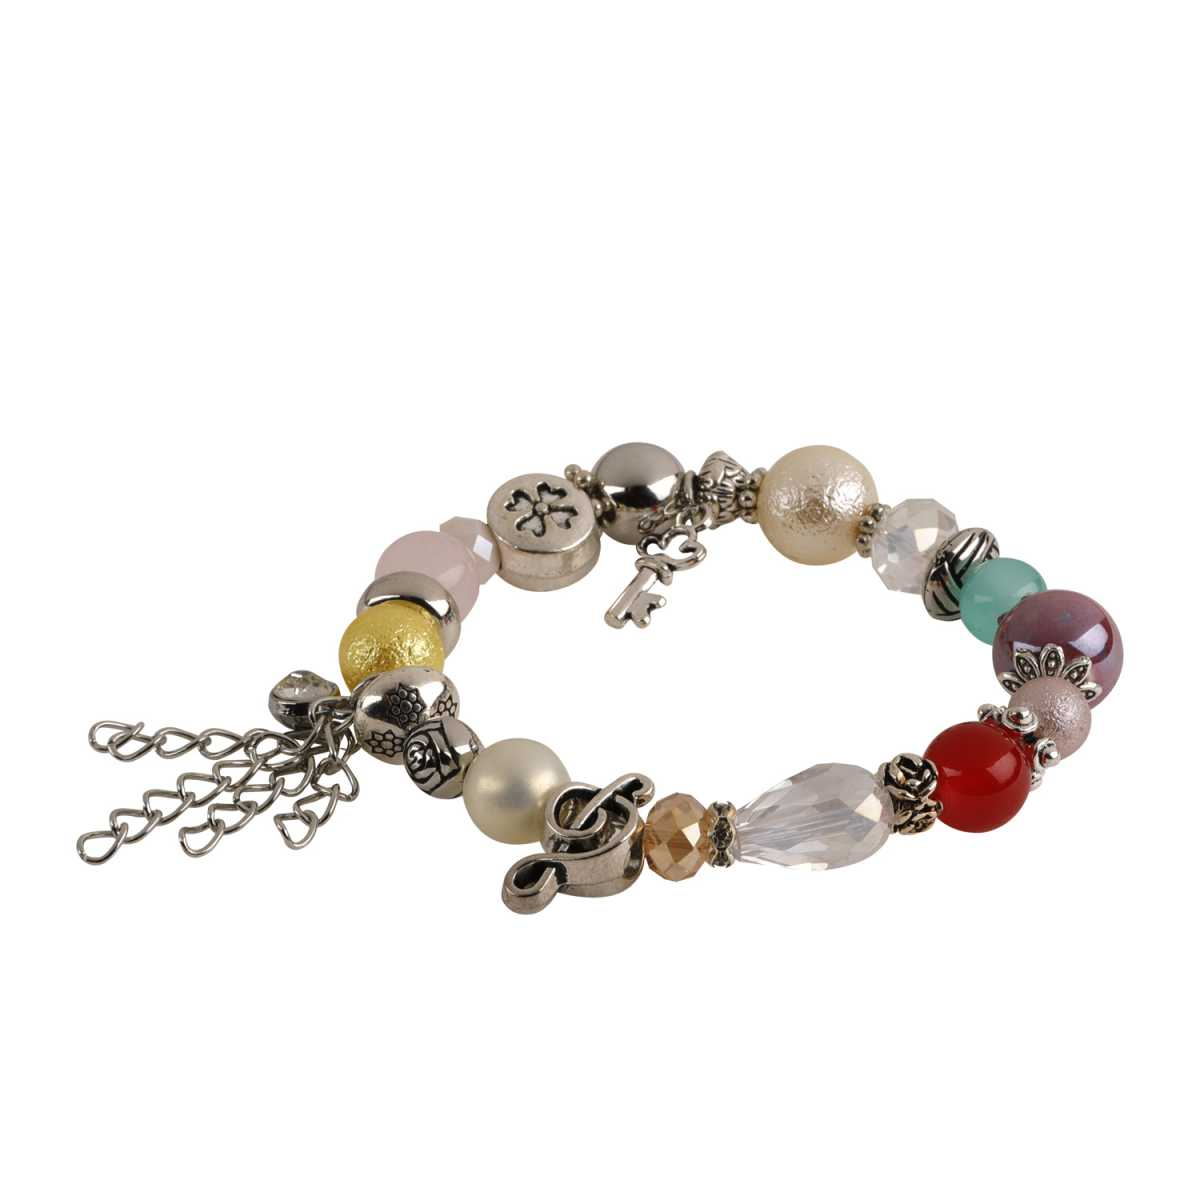 Three Way Charm Bracelet In Glass Beads And Metallic Chain For Girls And Women